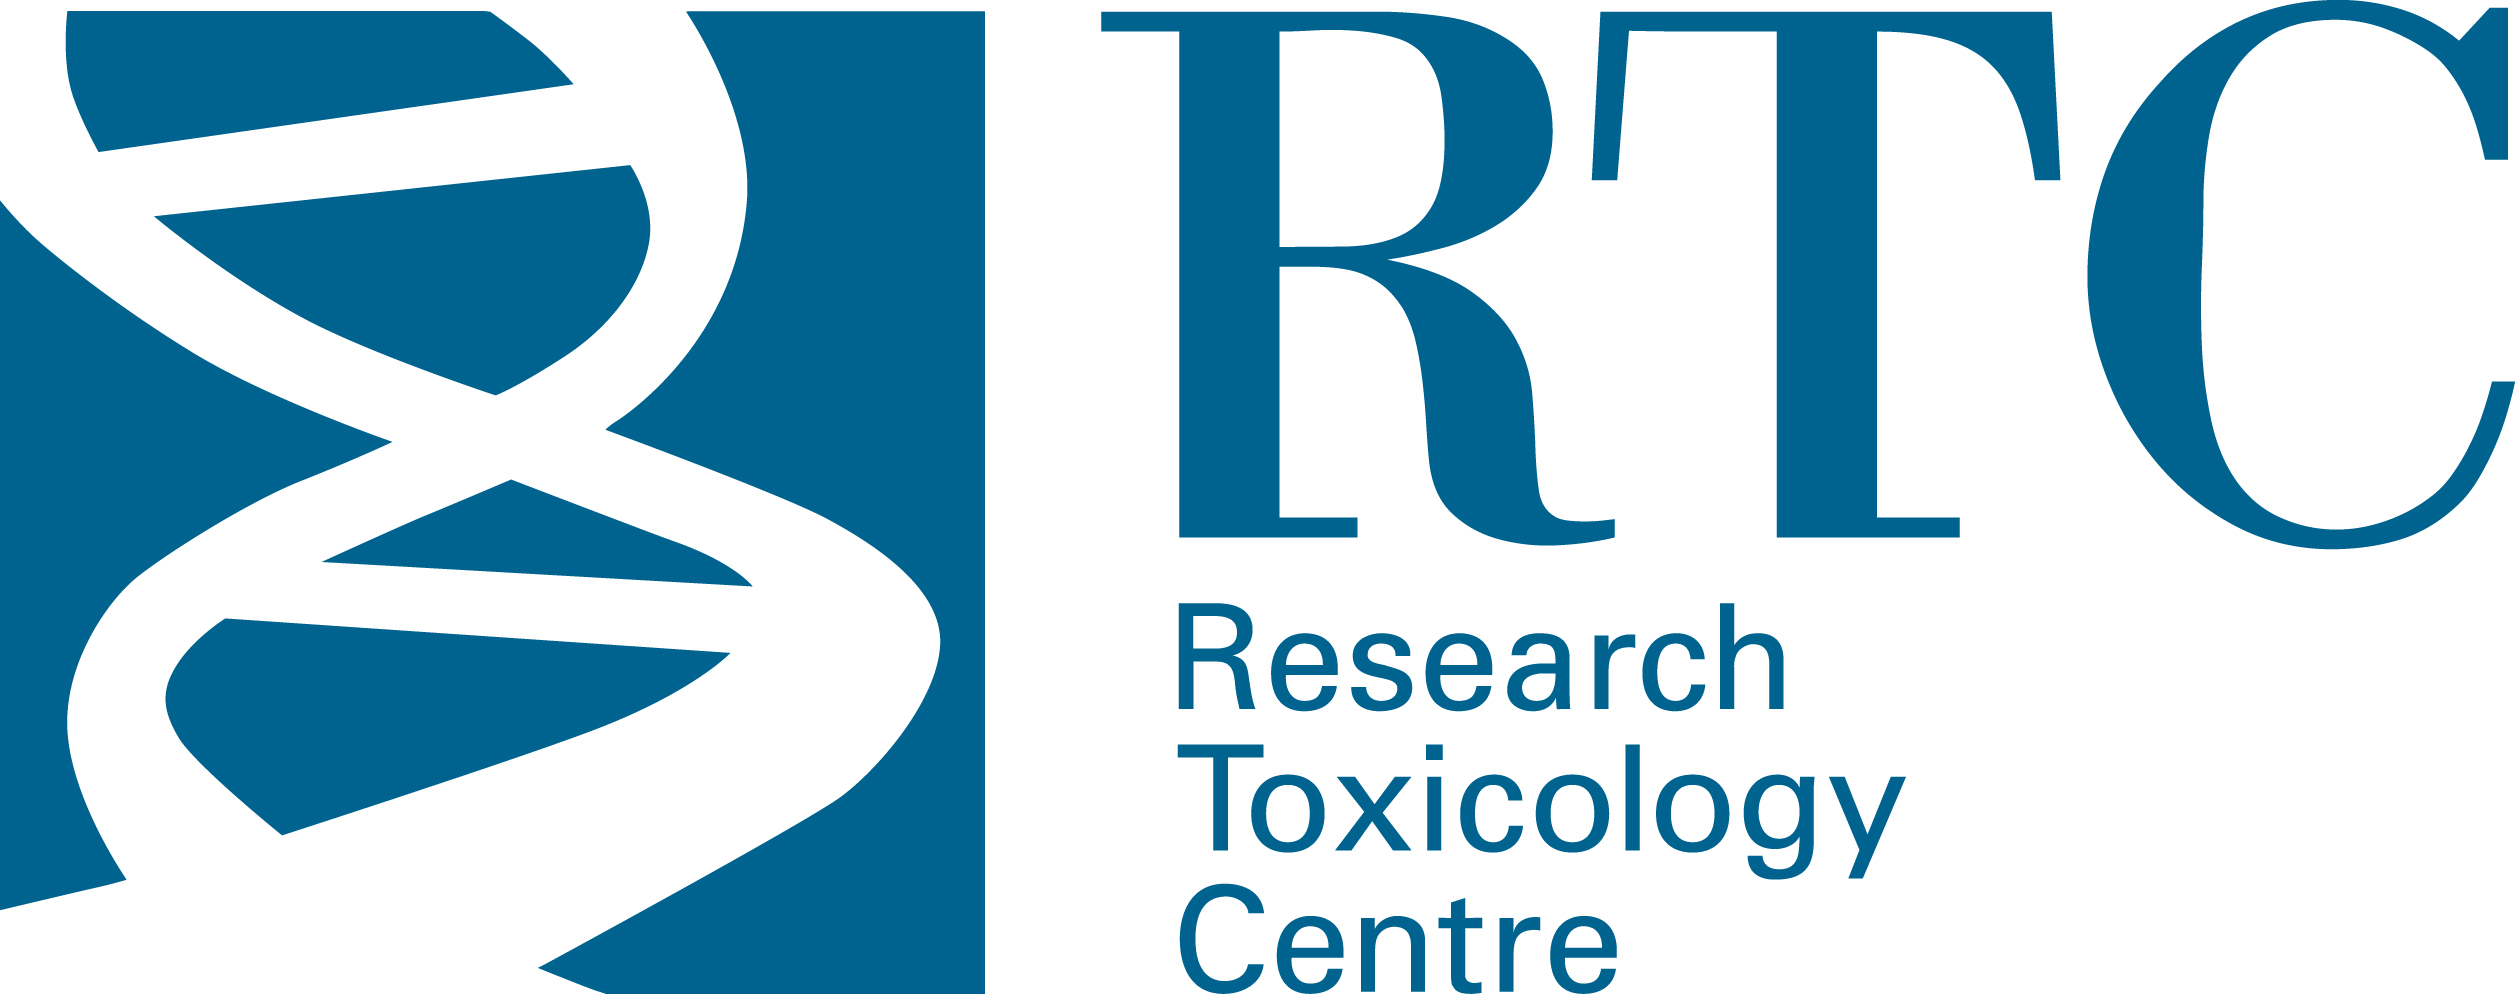 Research Toxicology Centre_logo.jpg